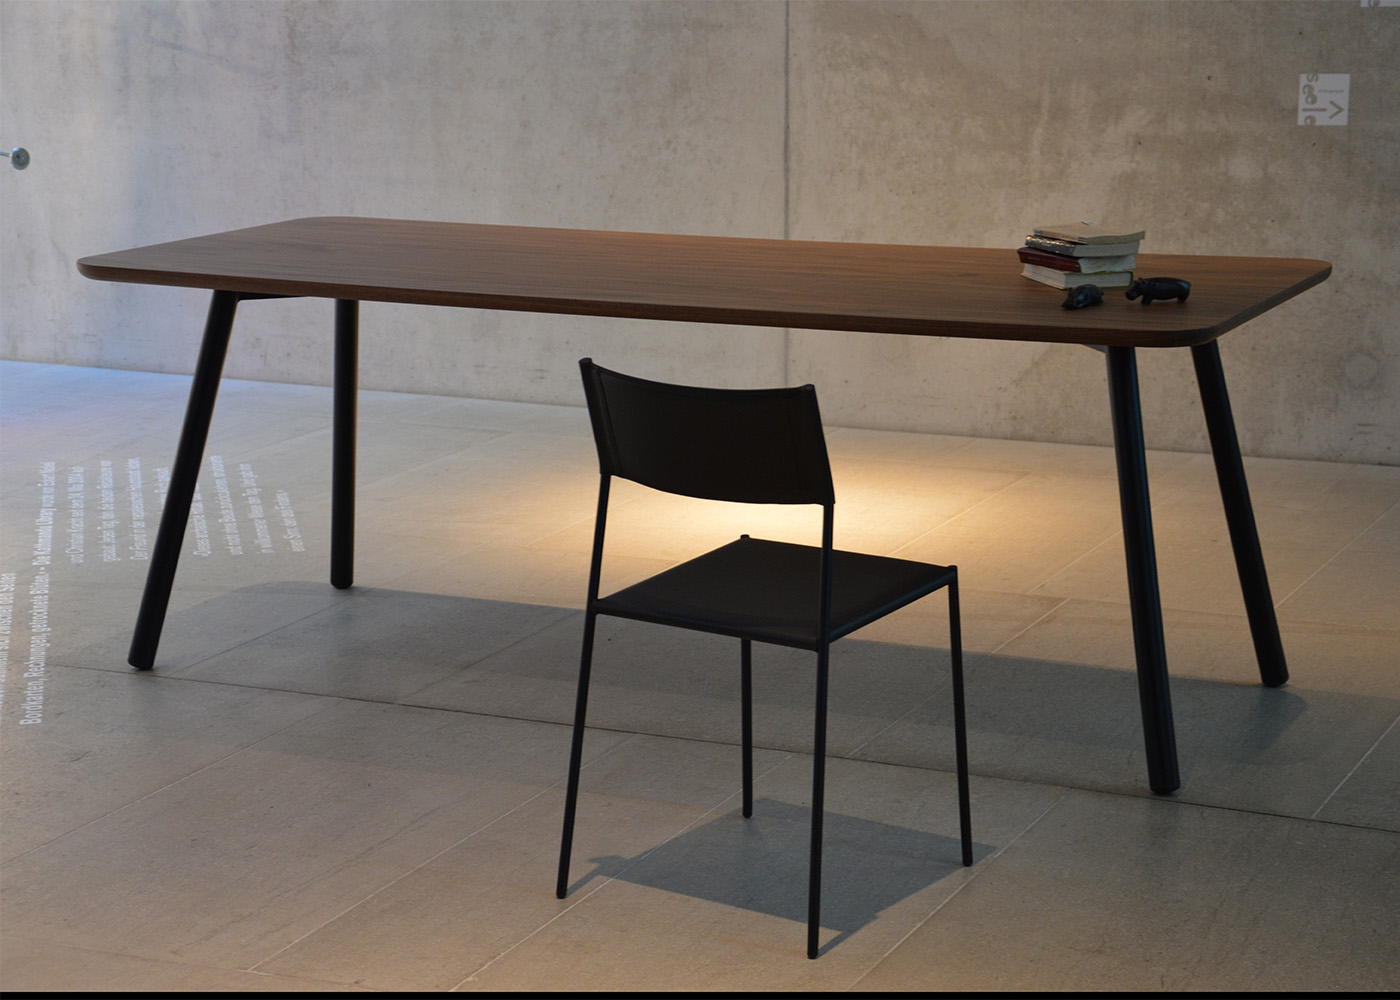 Table de repas en ch ne ou noyer au design sobre et for Bureau 90 cm de long